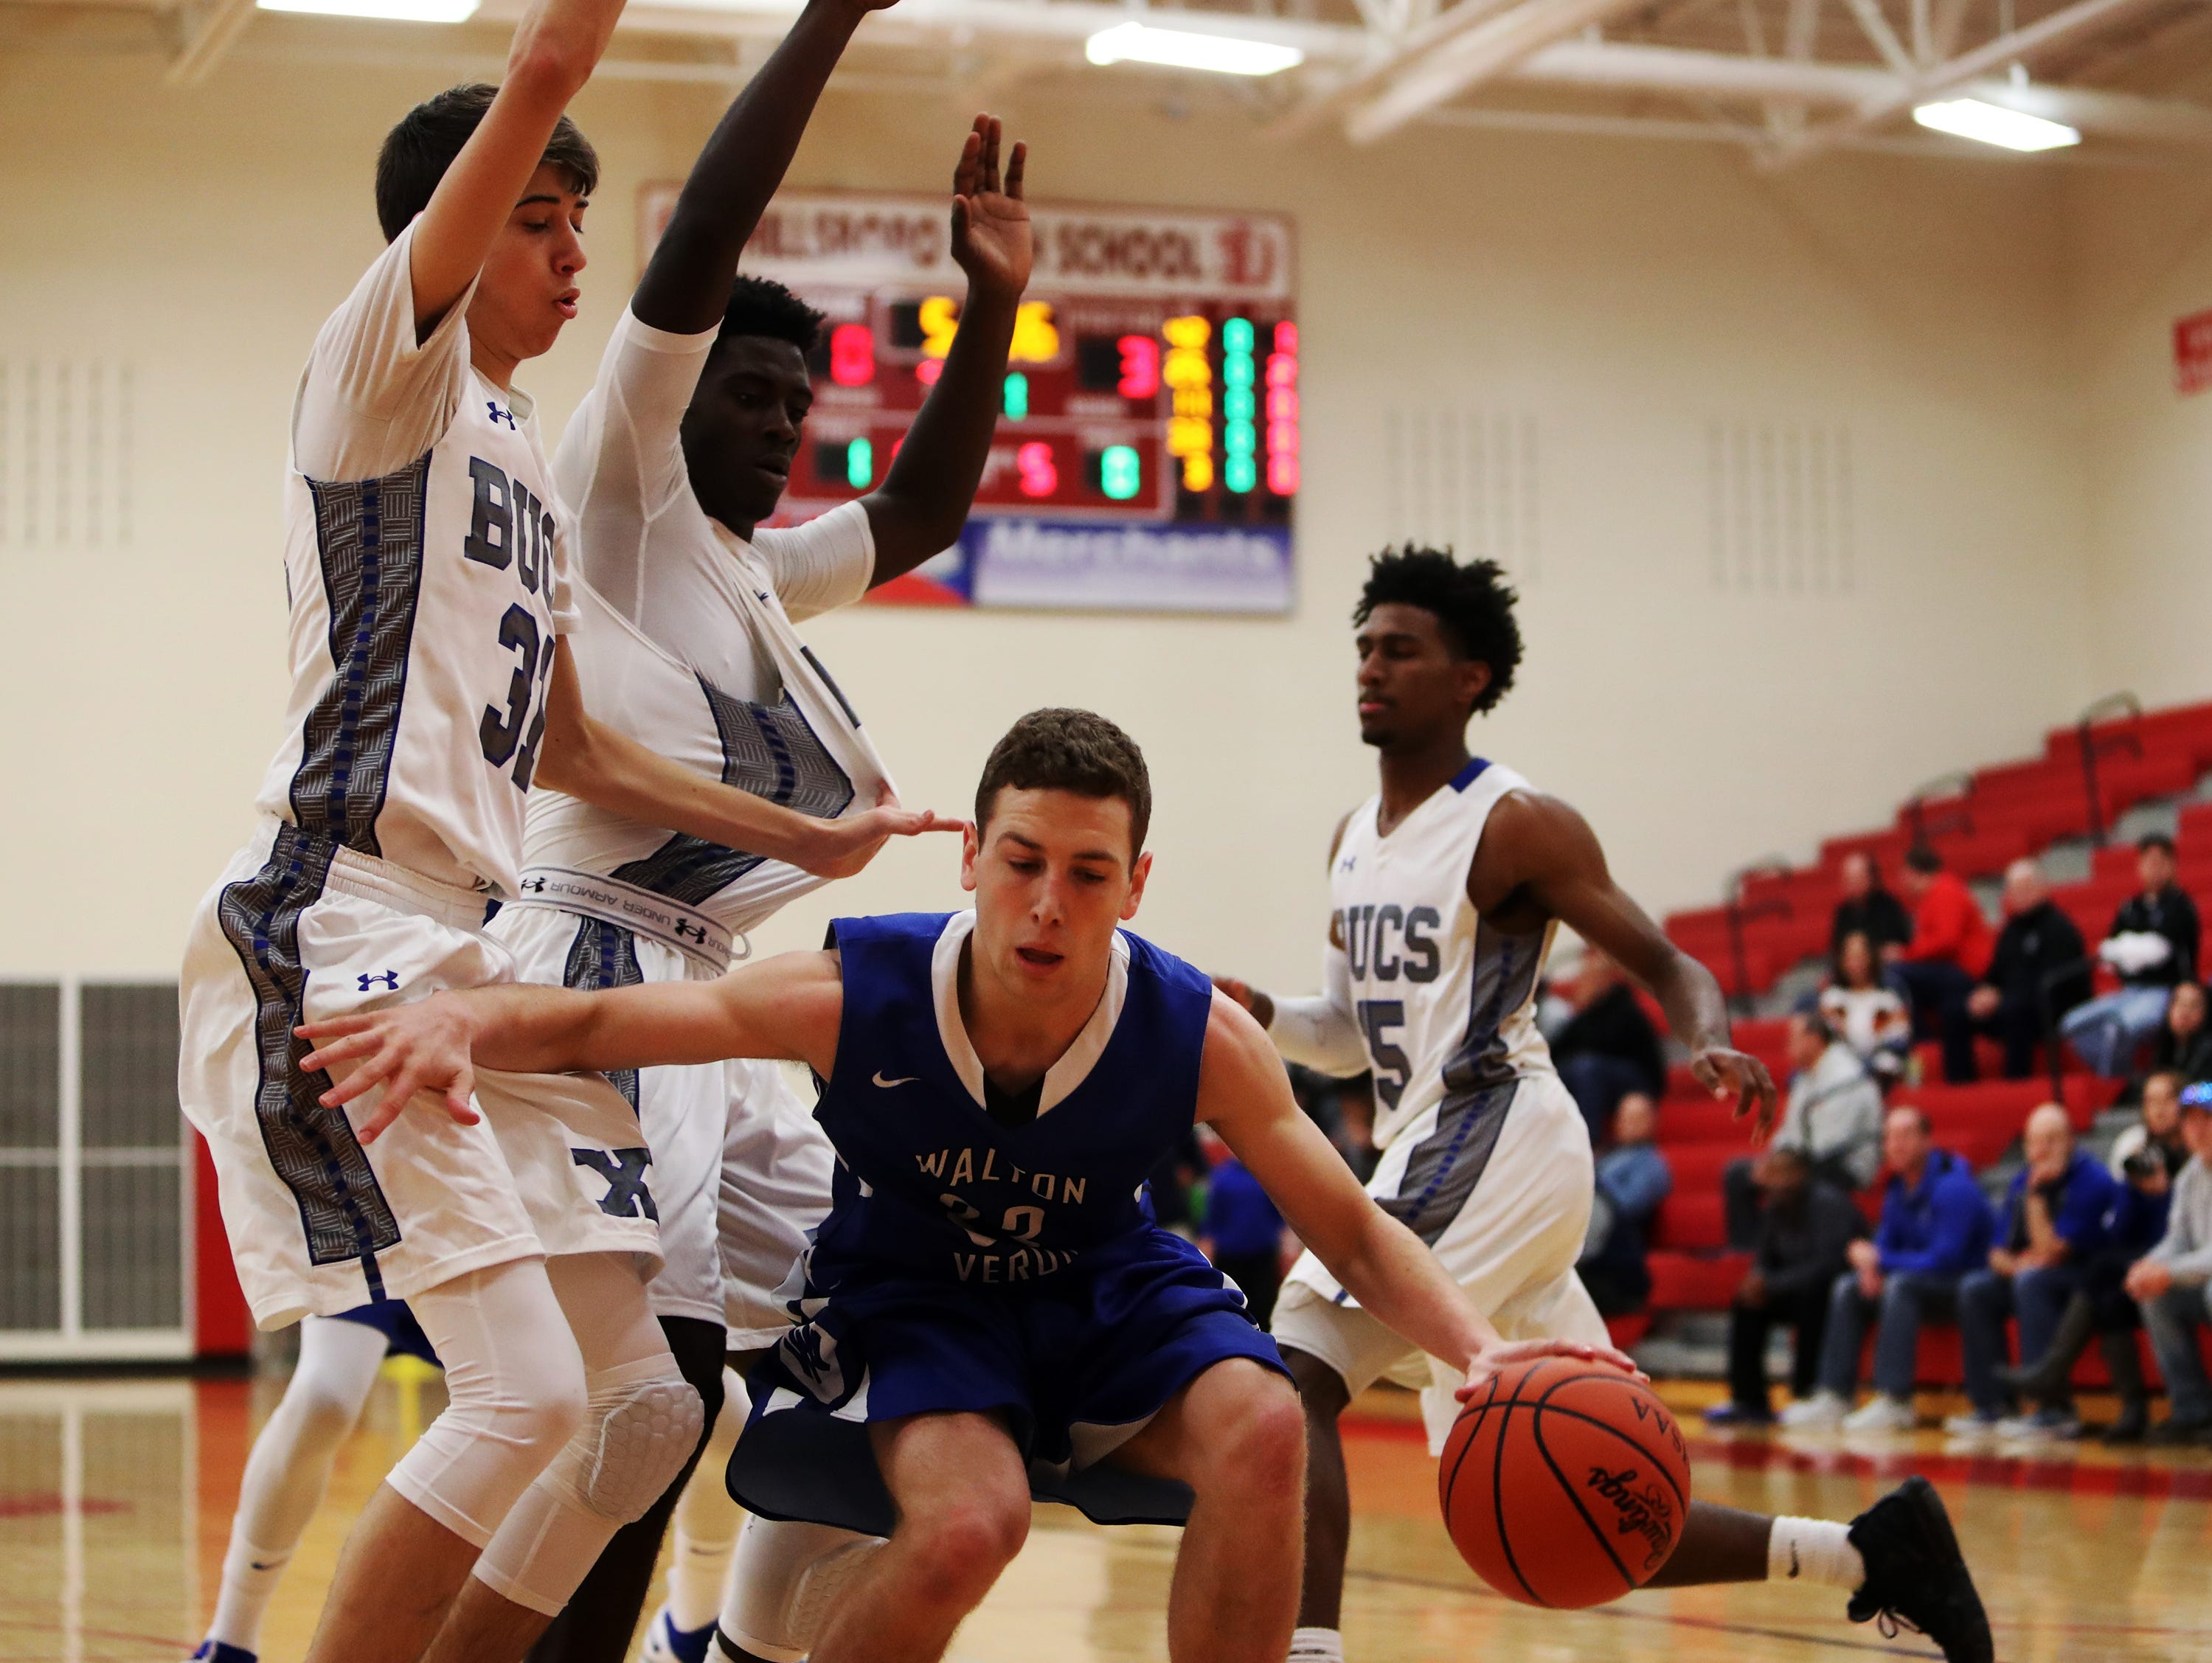 Walton Verona guard Grant Grubbs finds his way to the rim blocked by Xenia's Johnzel Gray, center, and Noah Crawford at the Ohio Valley Hoops Classic at Hillsboro High School.